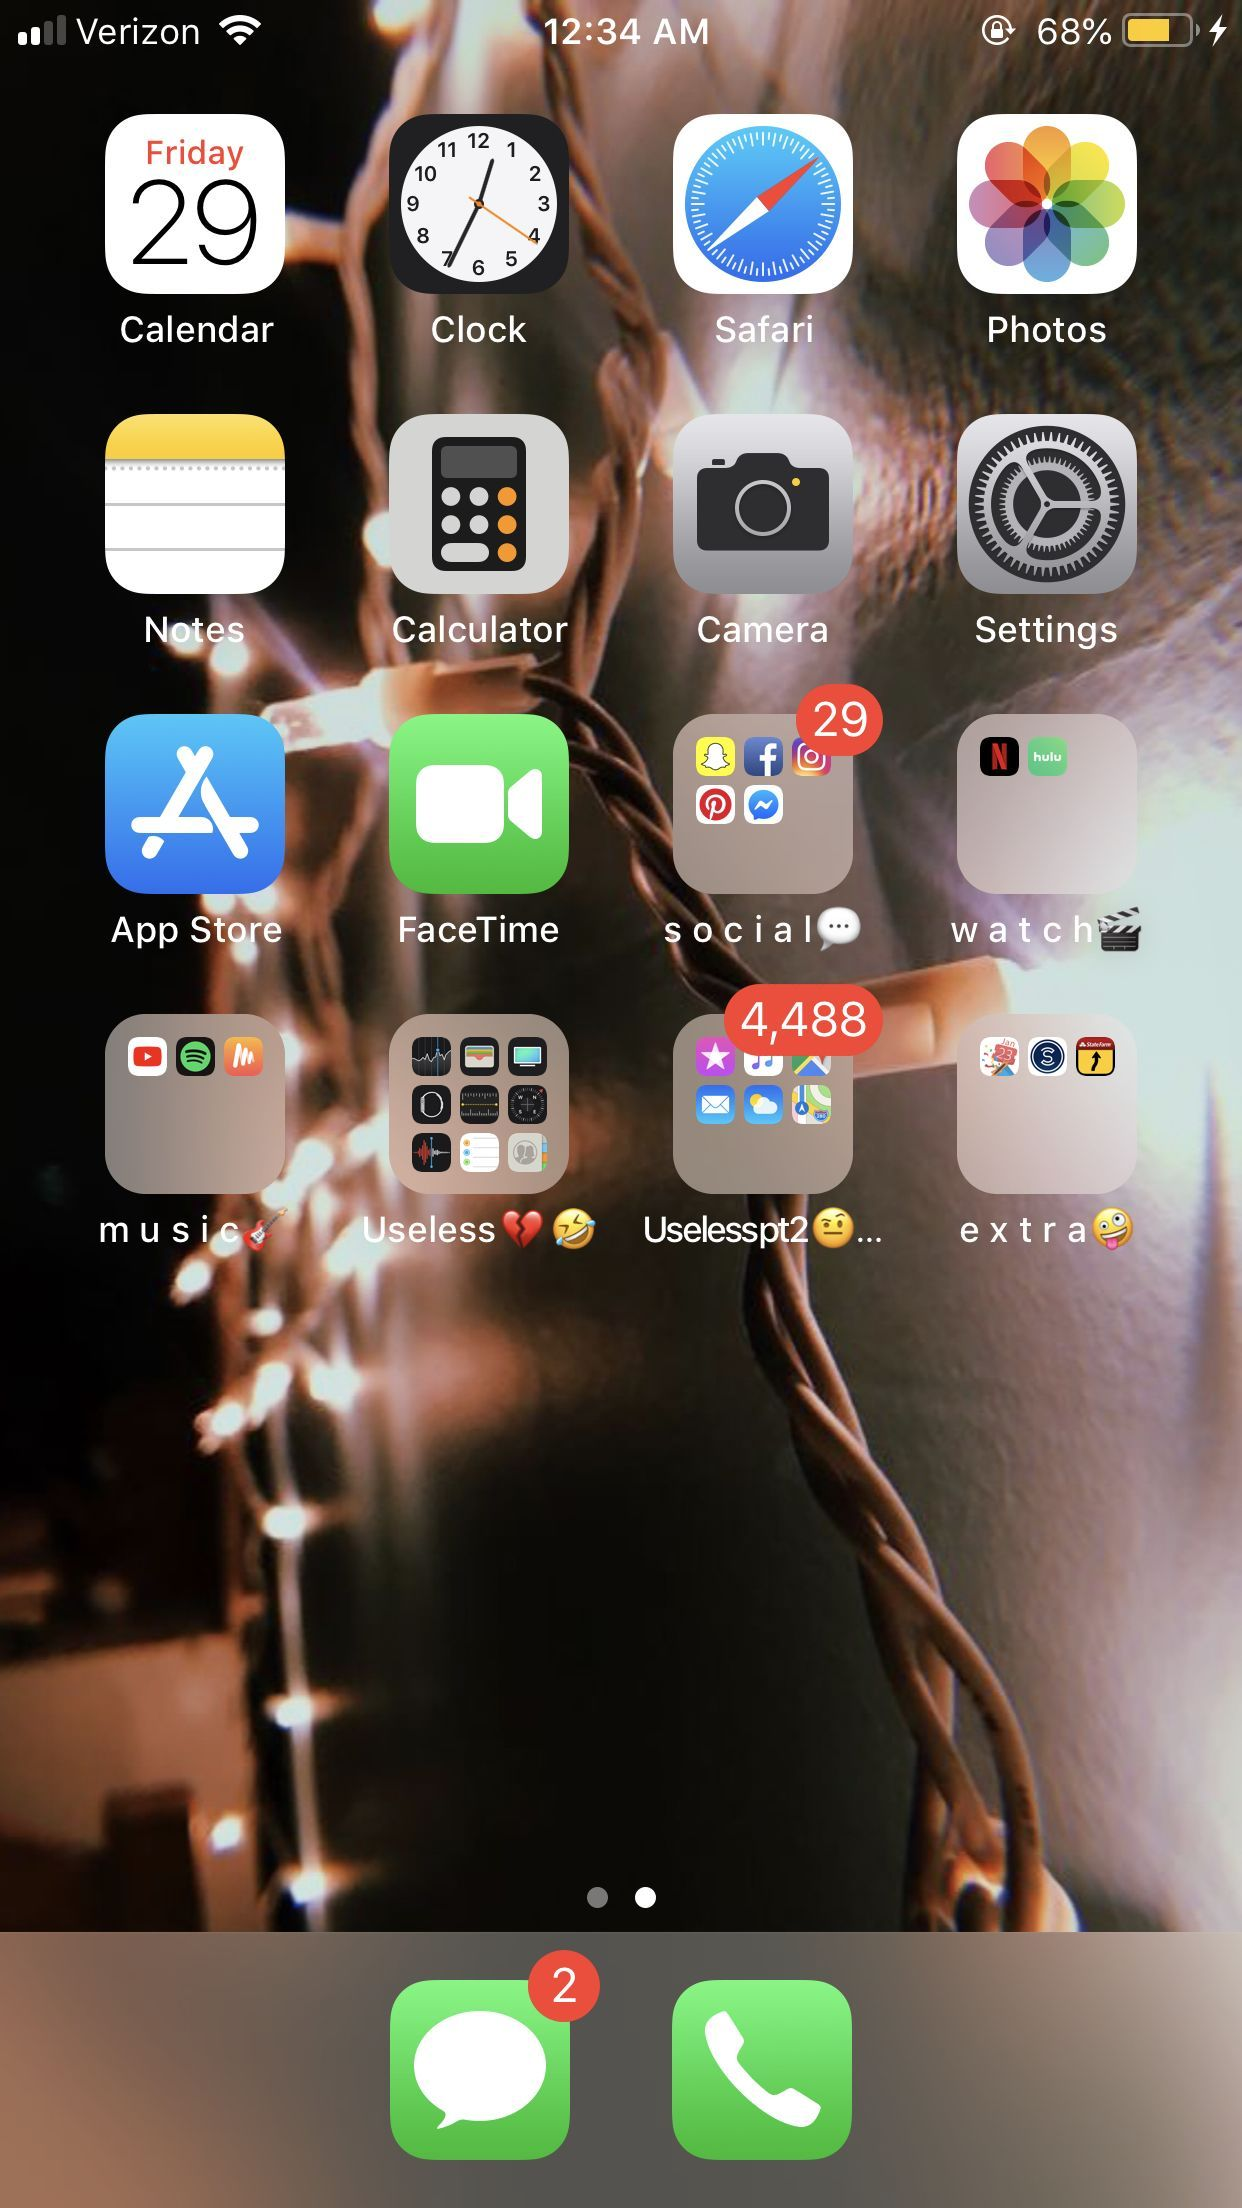 Organize Home Screen Aesthetic Iphone Organization In 2019 S Homescreen Iphone Iphone Organization Iphone Home Screen Layout